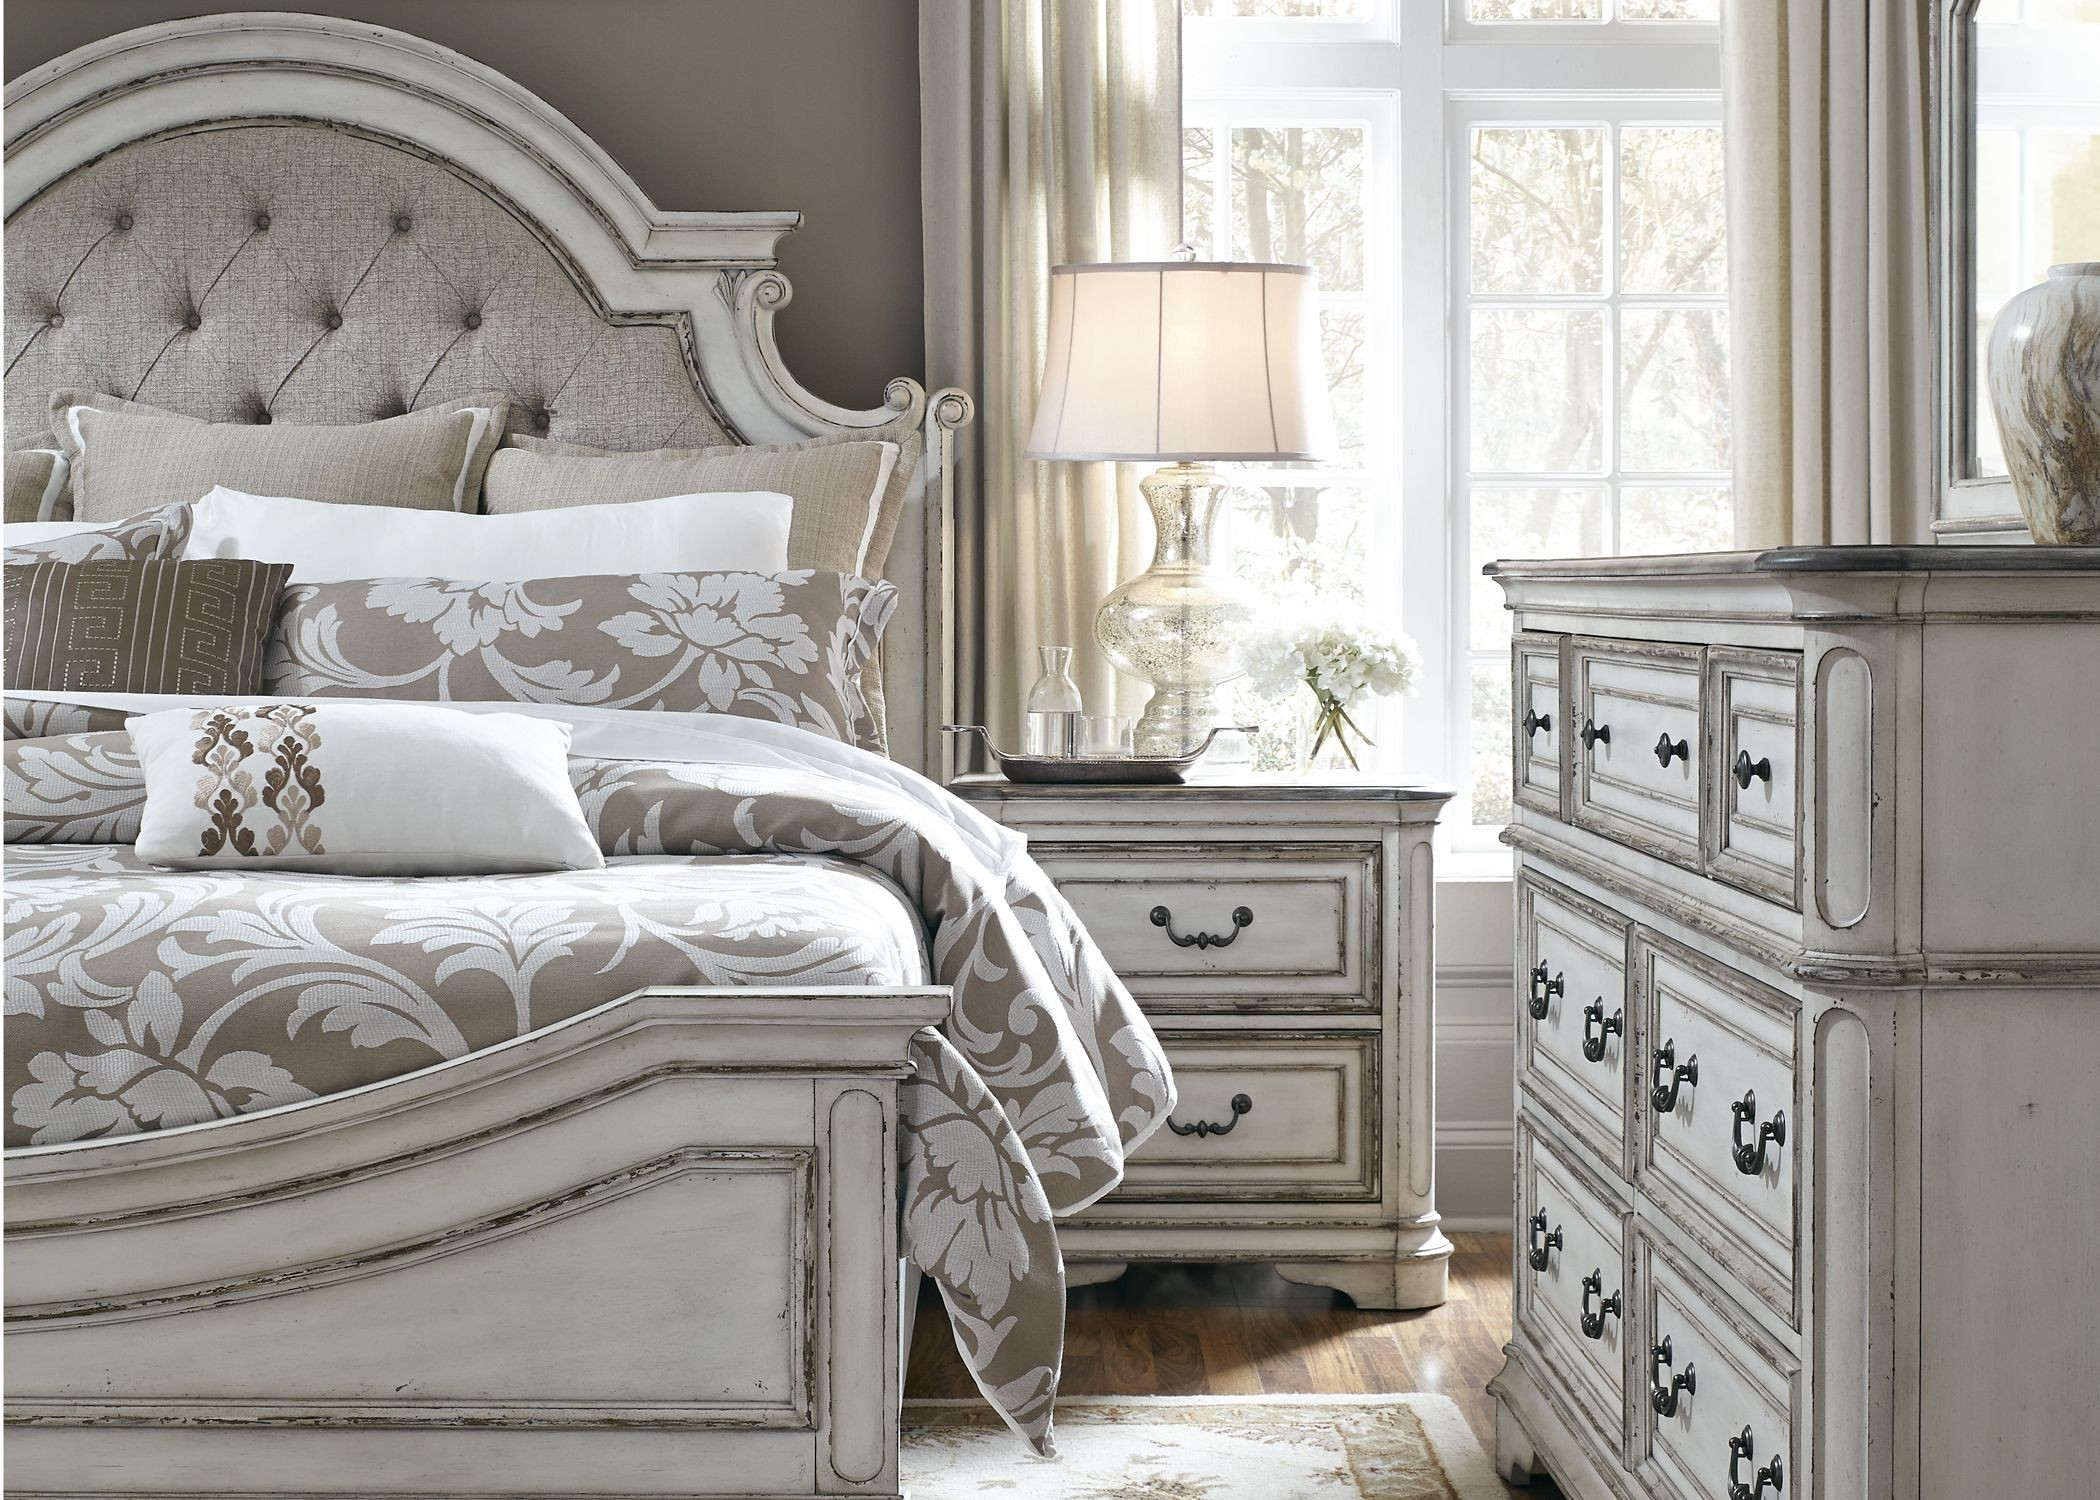 Magnolia manor antique white upholstered panel bedroom set - White vintage bedroom furniture sets ...